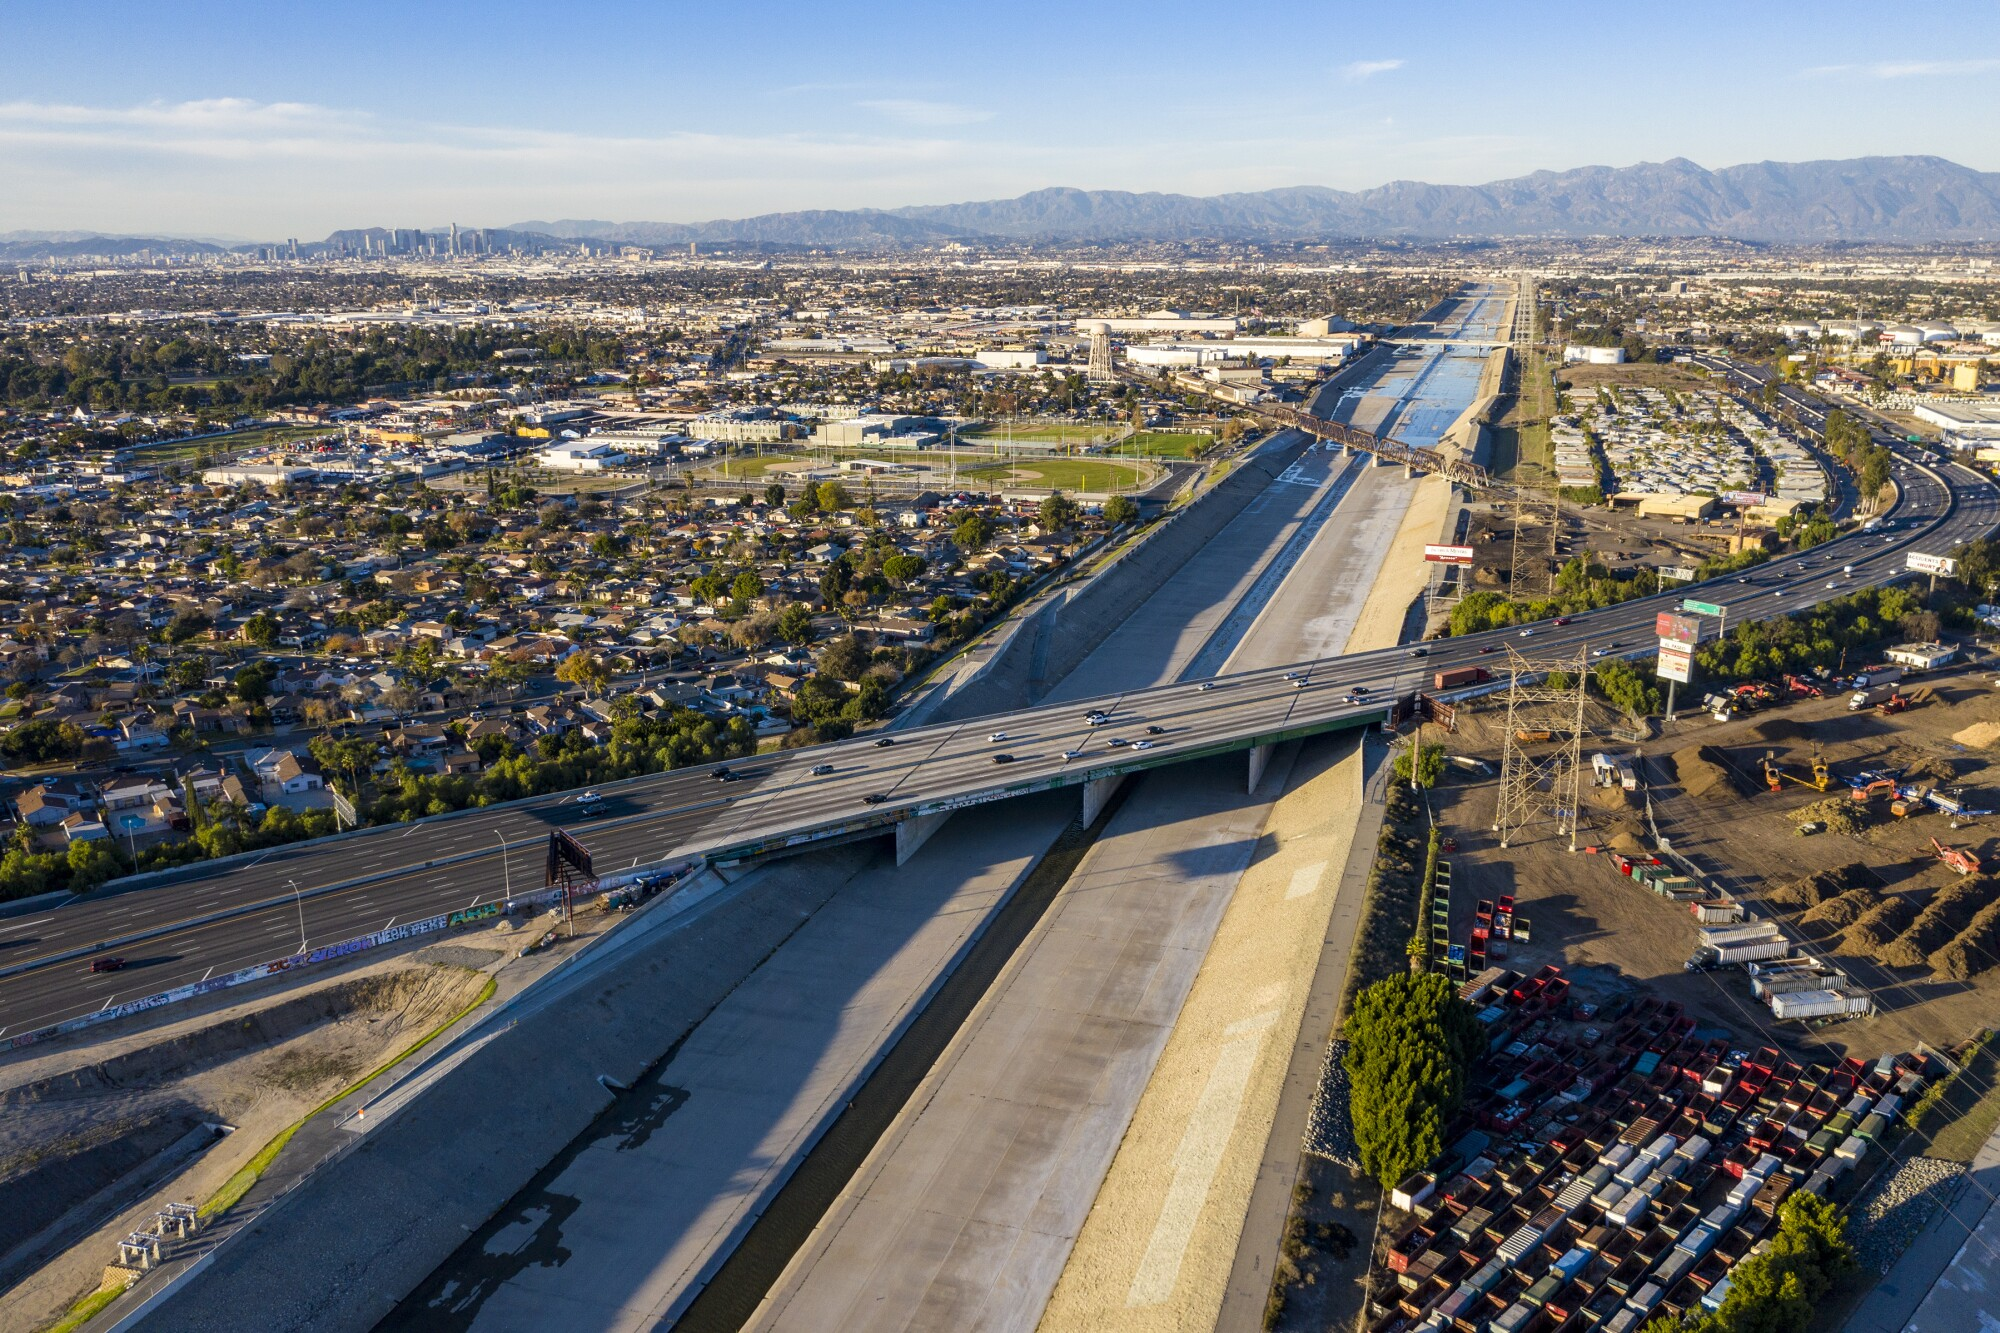 A view looking  north towards a proposed Los Angeles River Platform Park